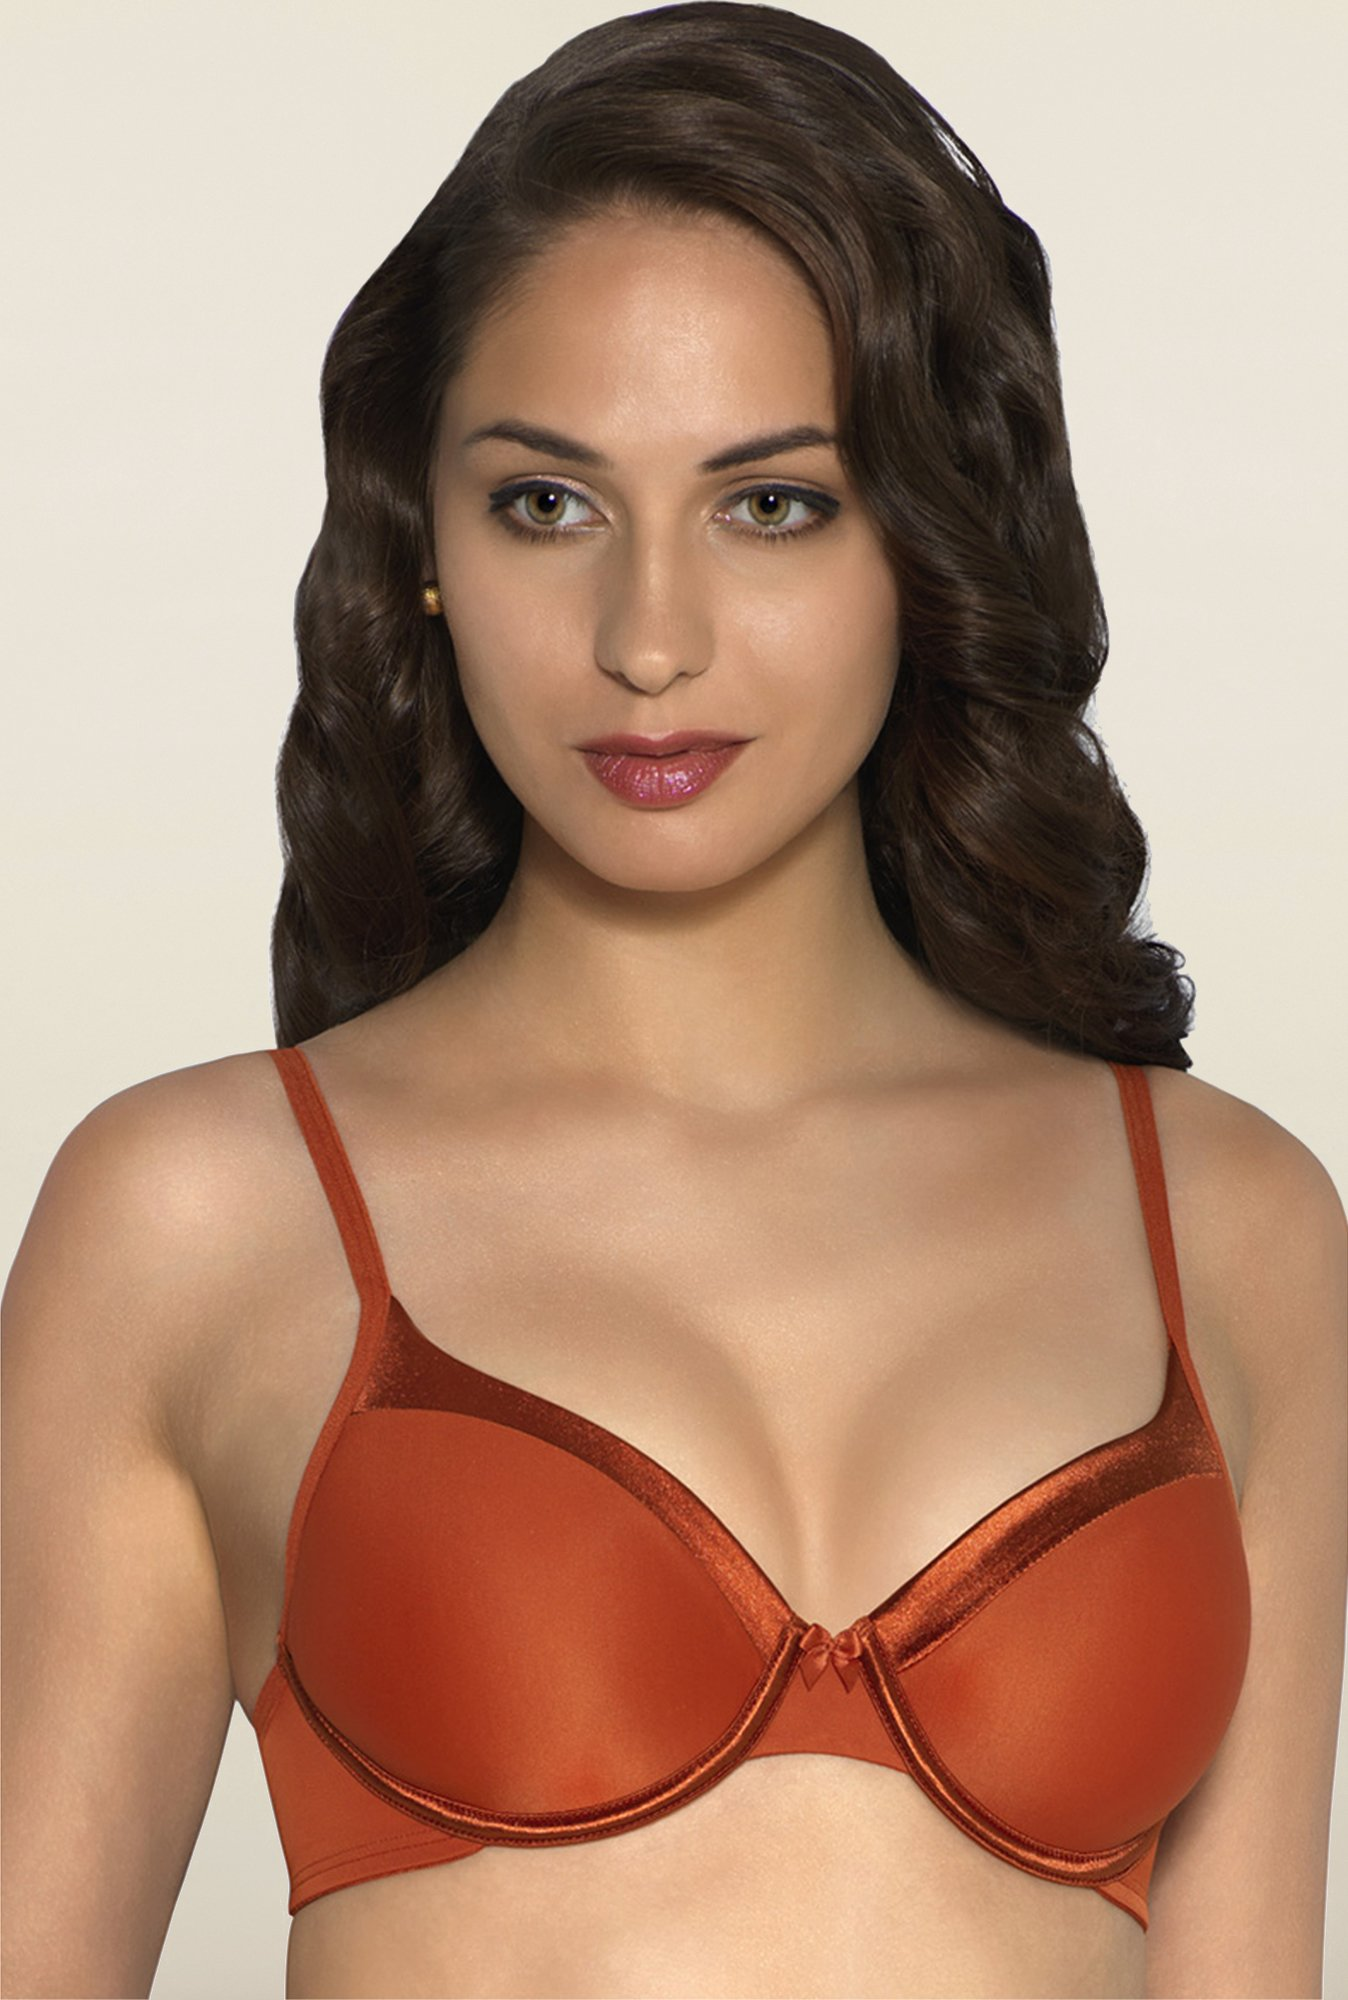 Amante Orange Underwired Padded Bra